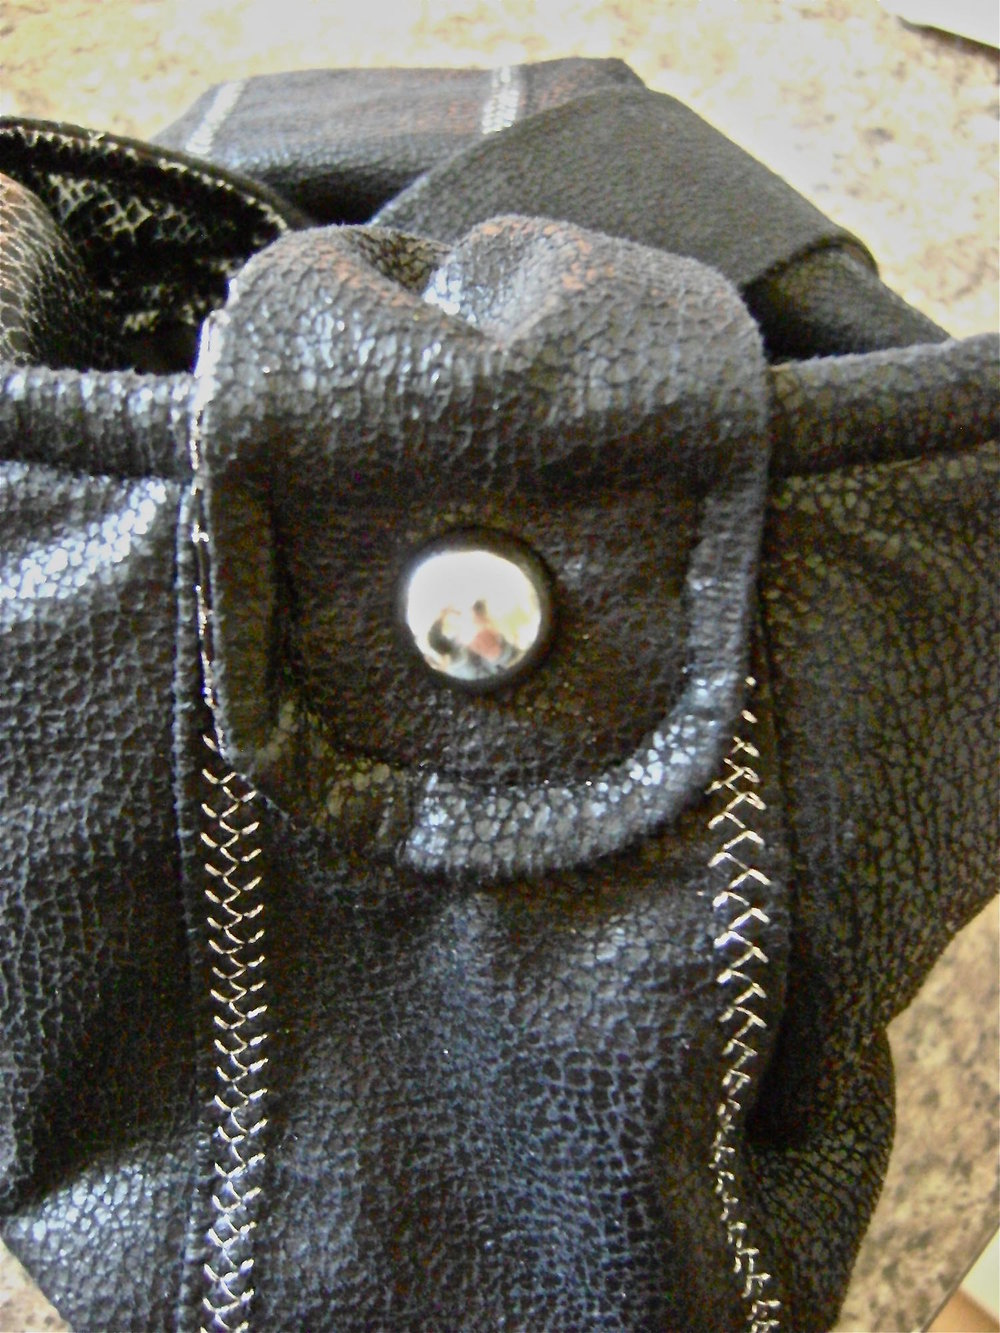 step 30 - Attach a decorative silver stud to the center of the loop.  Push the stud through the purse shell and fleece.  Attach the back side of the stud between the fleece and the lining.